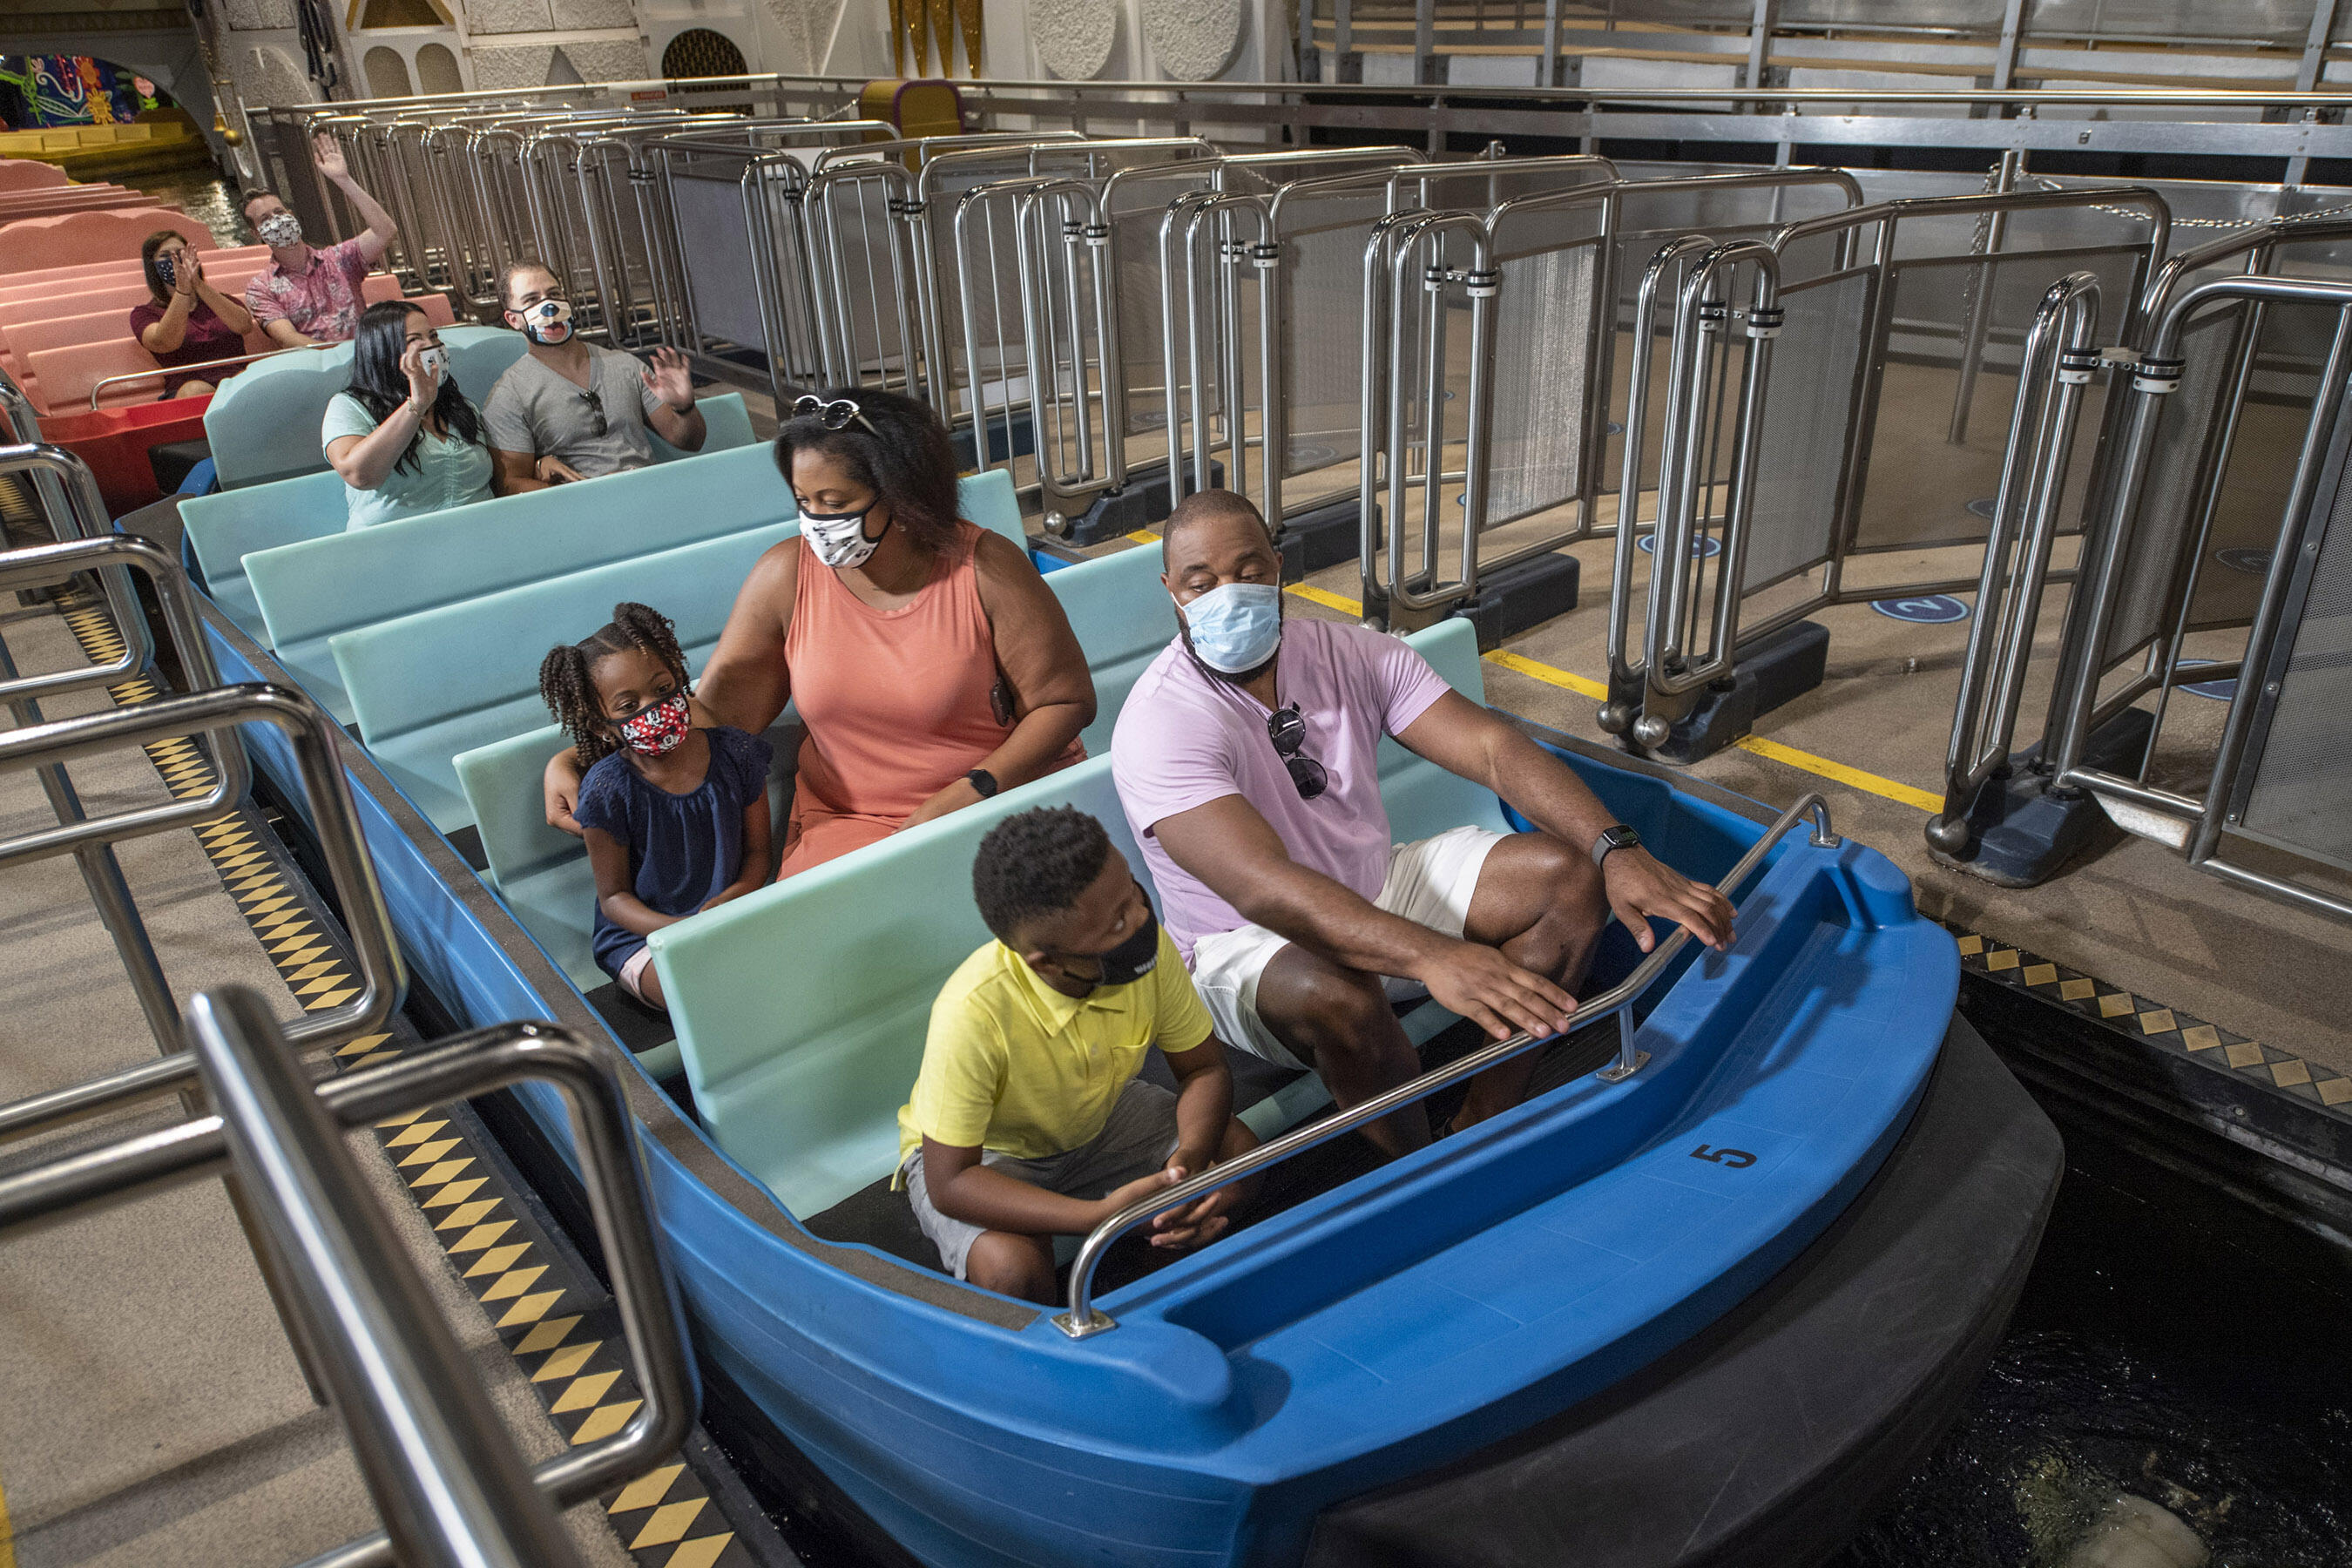 Disney World reopening attraction boarding